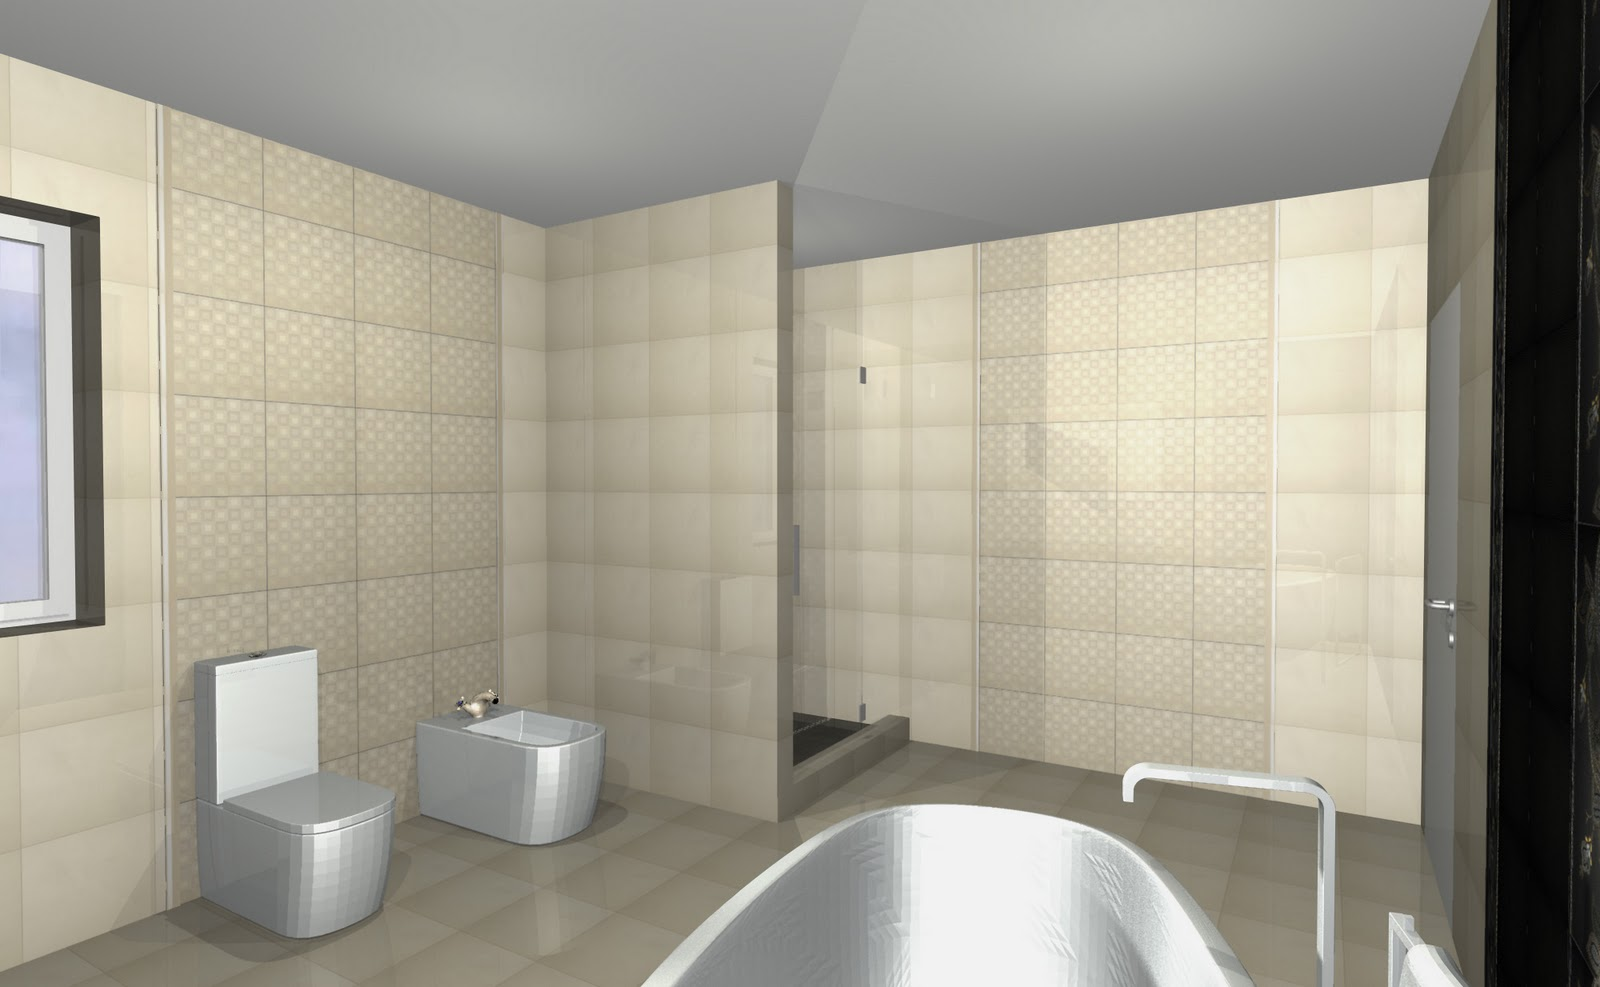 4d ltd bathroom design for Bathroom design ltd